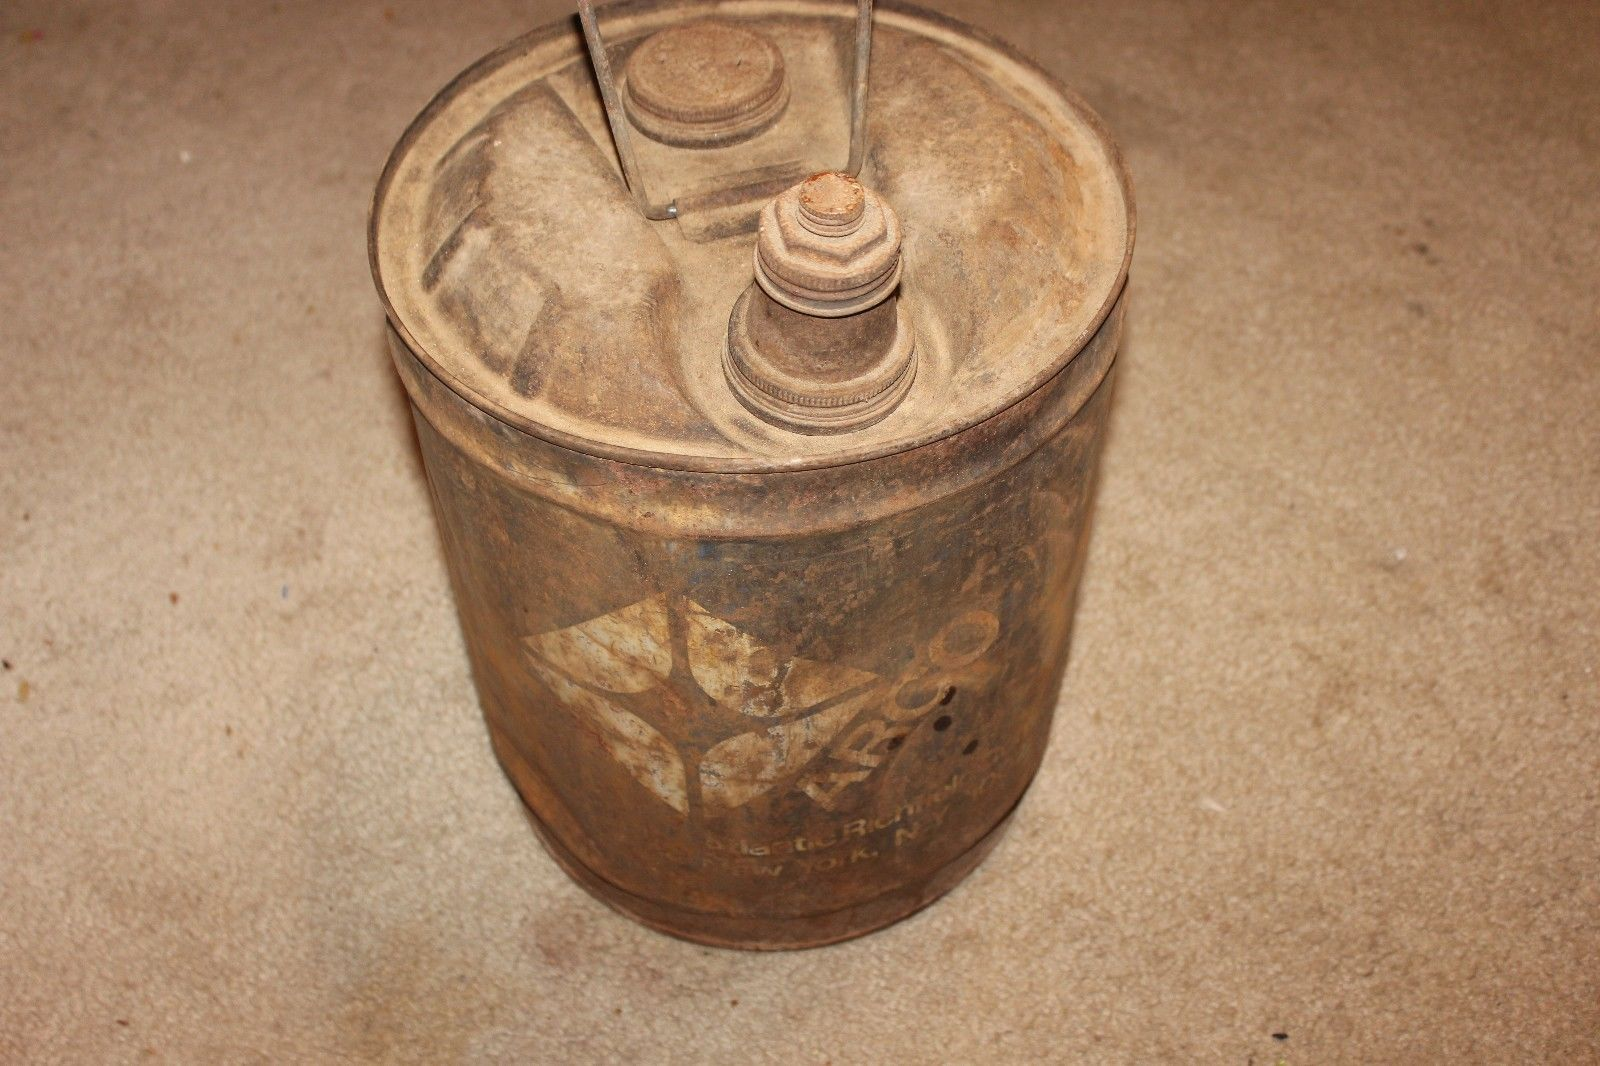 Vintage Atlantic Richfield Company 5 Gallon Metal Gas Can - ARCO 1971